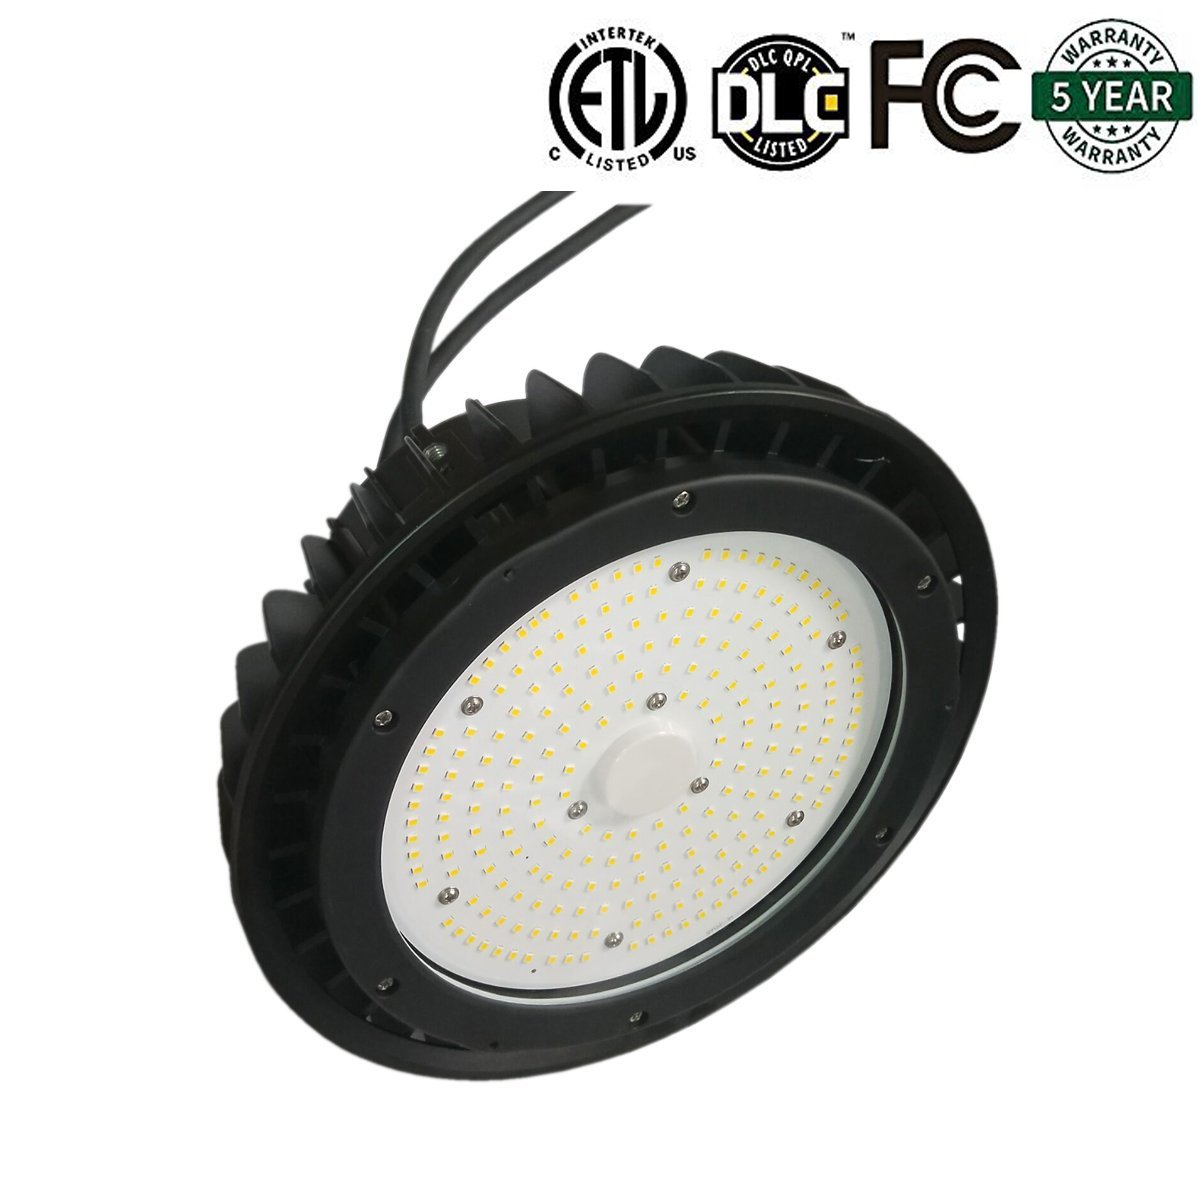 SDYK, 150w UFO High Bay LED Lights, 1-10v Dimmable UFO high Bay,5000K 19500lm,with Hook.0.3m Cable, Safety Chain, 5 Years Warranty IP65 ETL DLC4.2